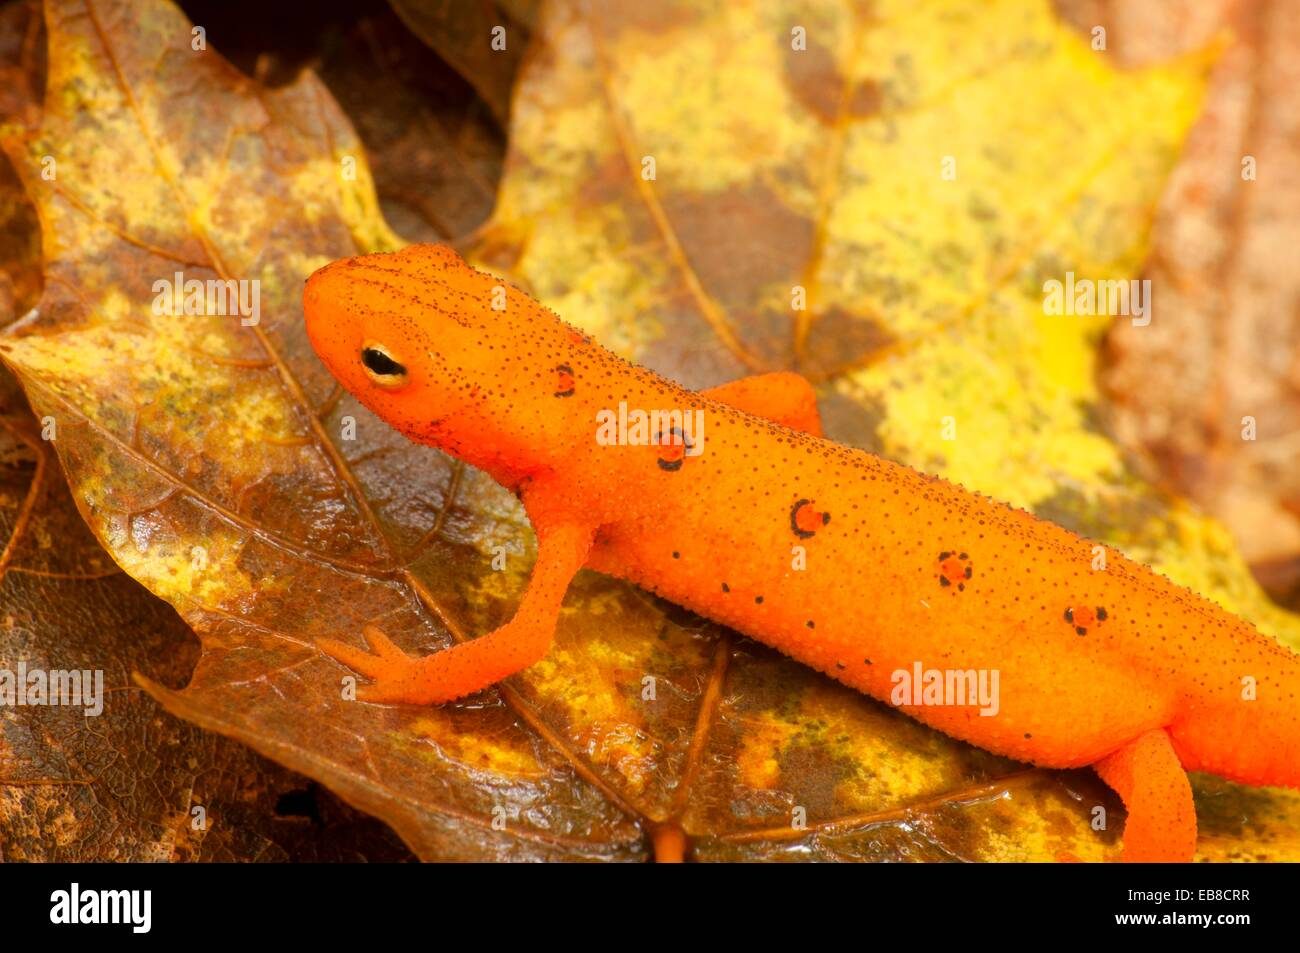 Red eft, Tunxis State Forest, Connecticut. Stock Photo